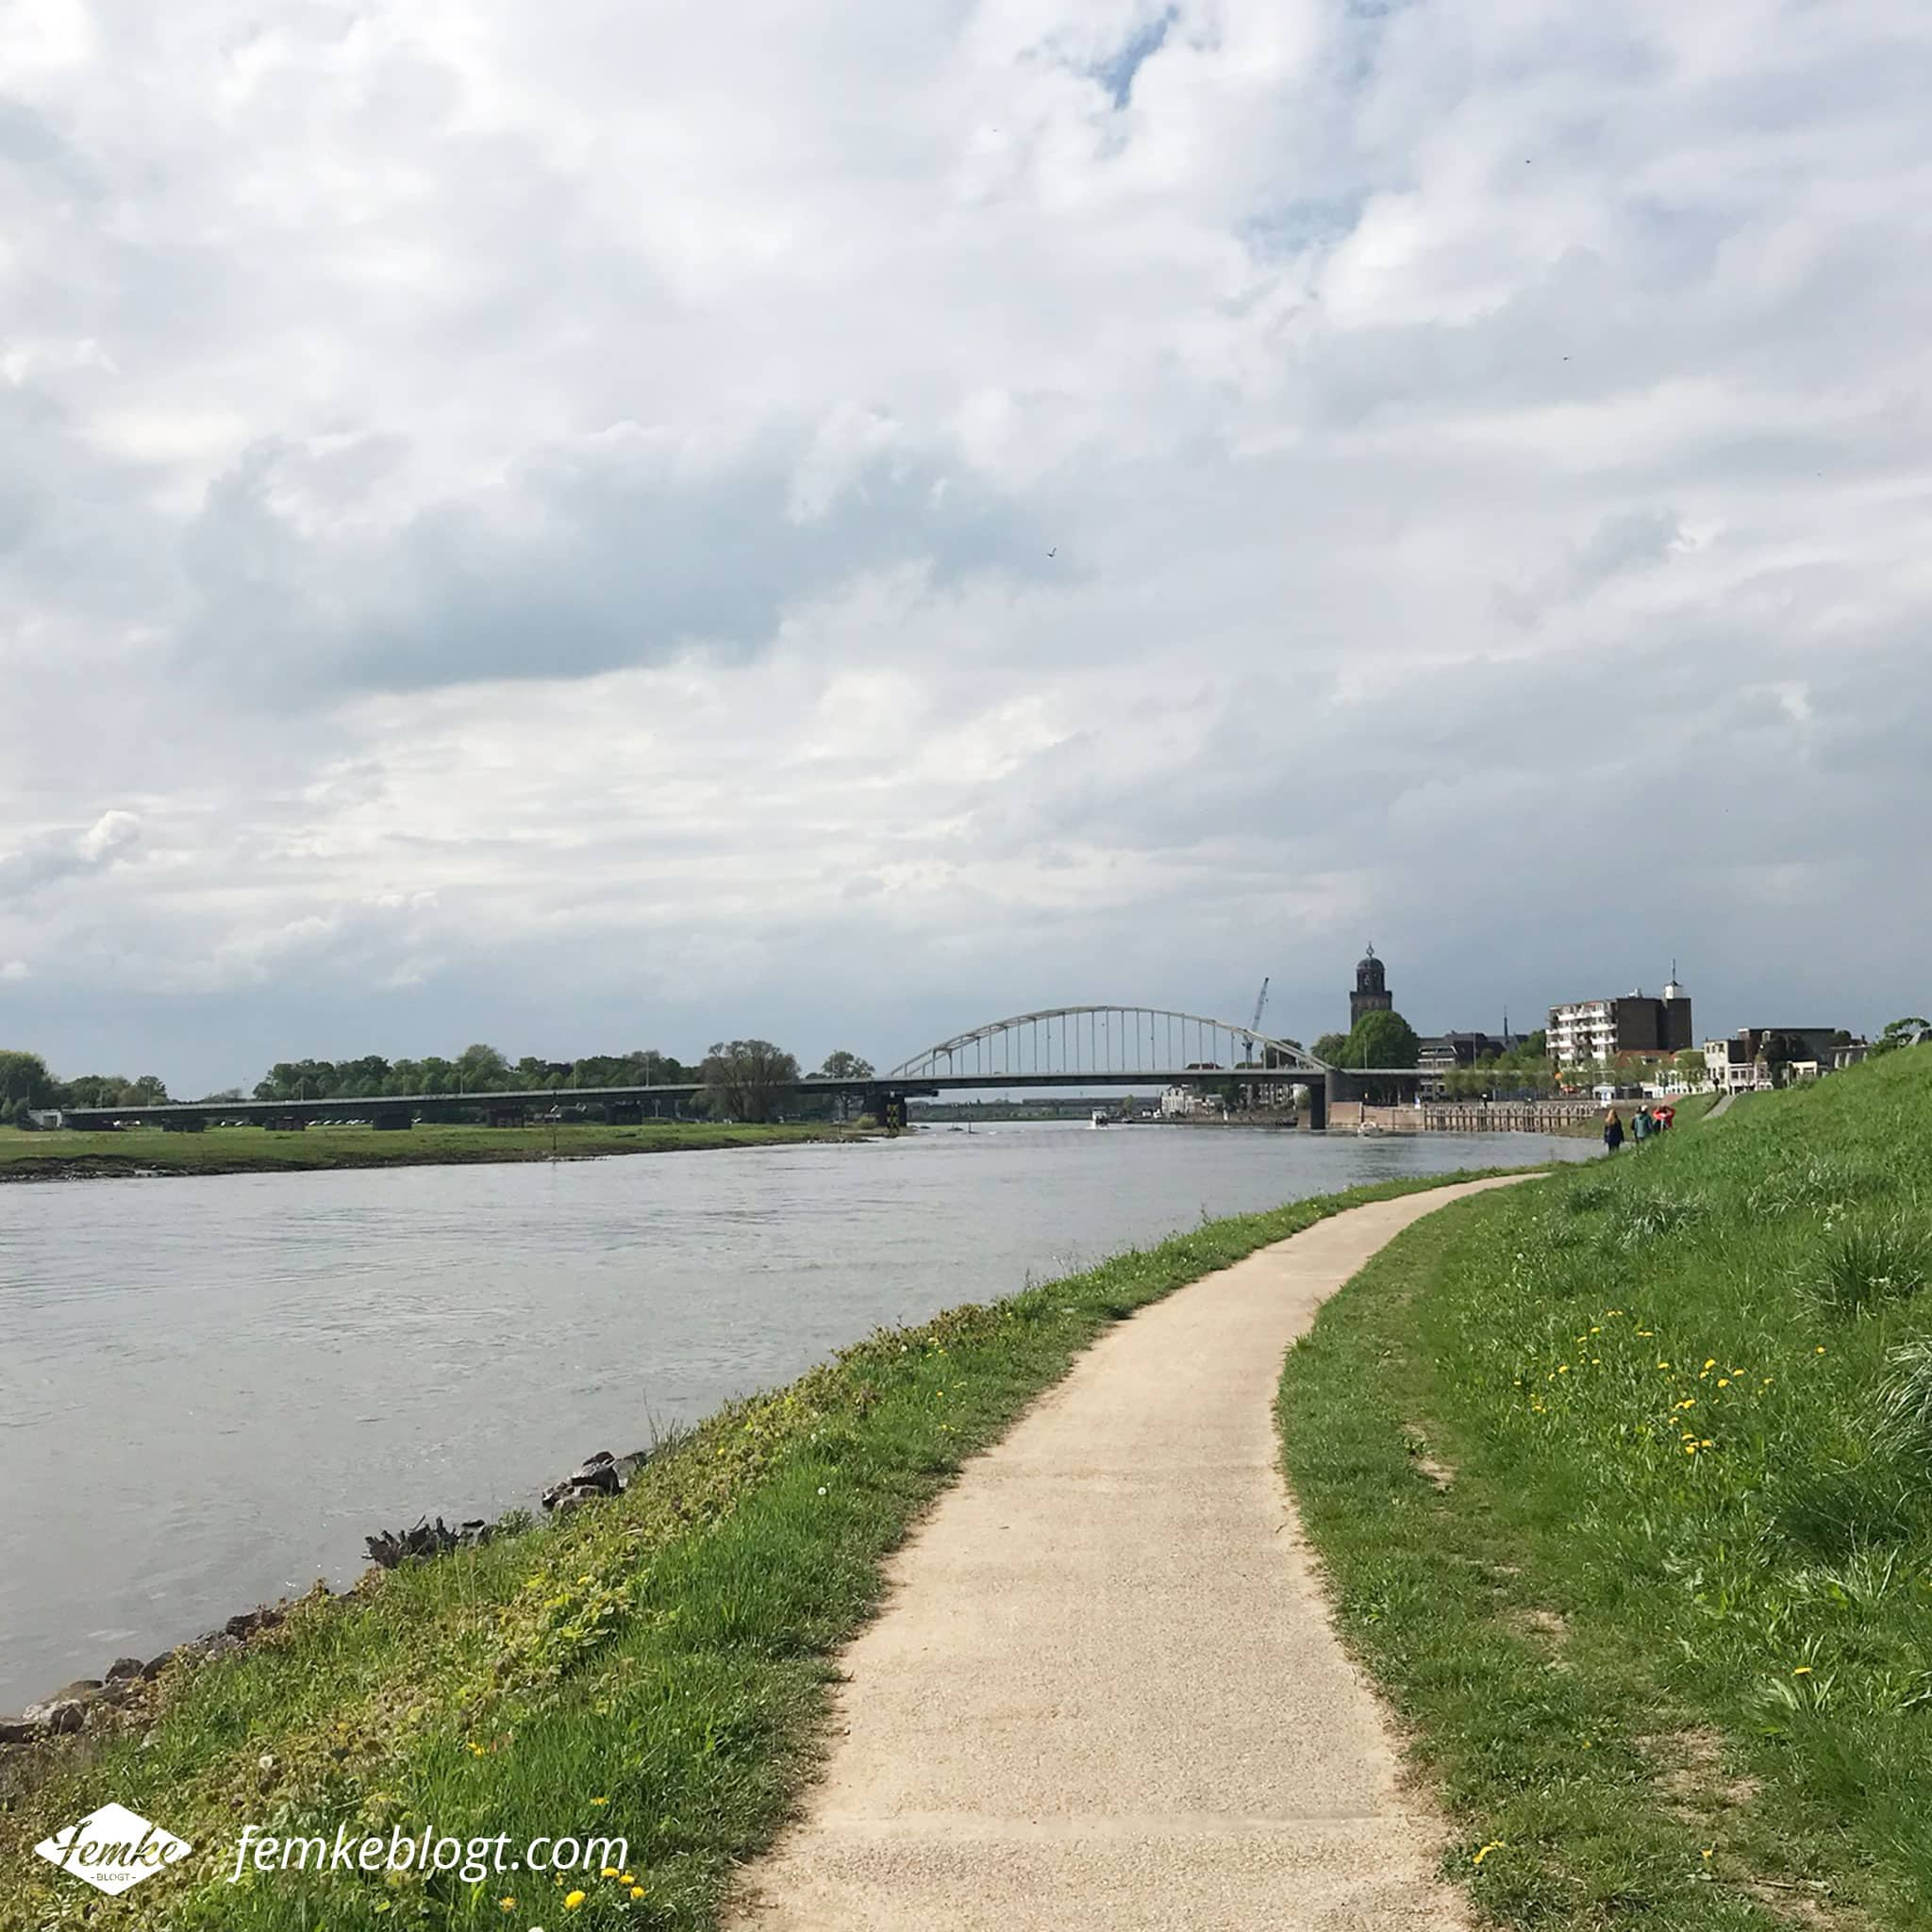 Maandoverzicht april | Hanzestedenpad Zutphen - Deventer